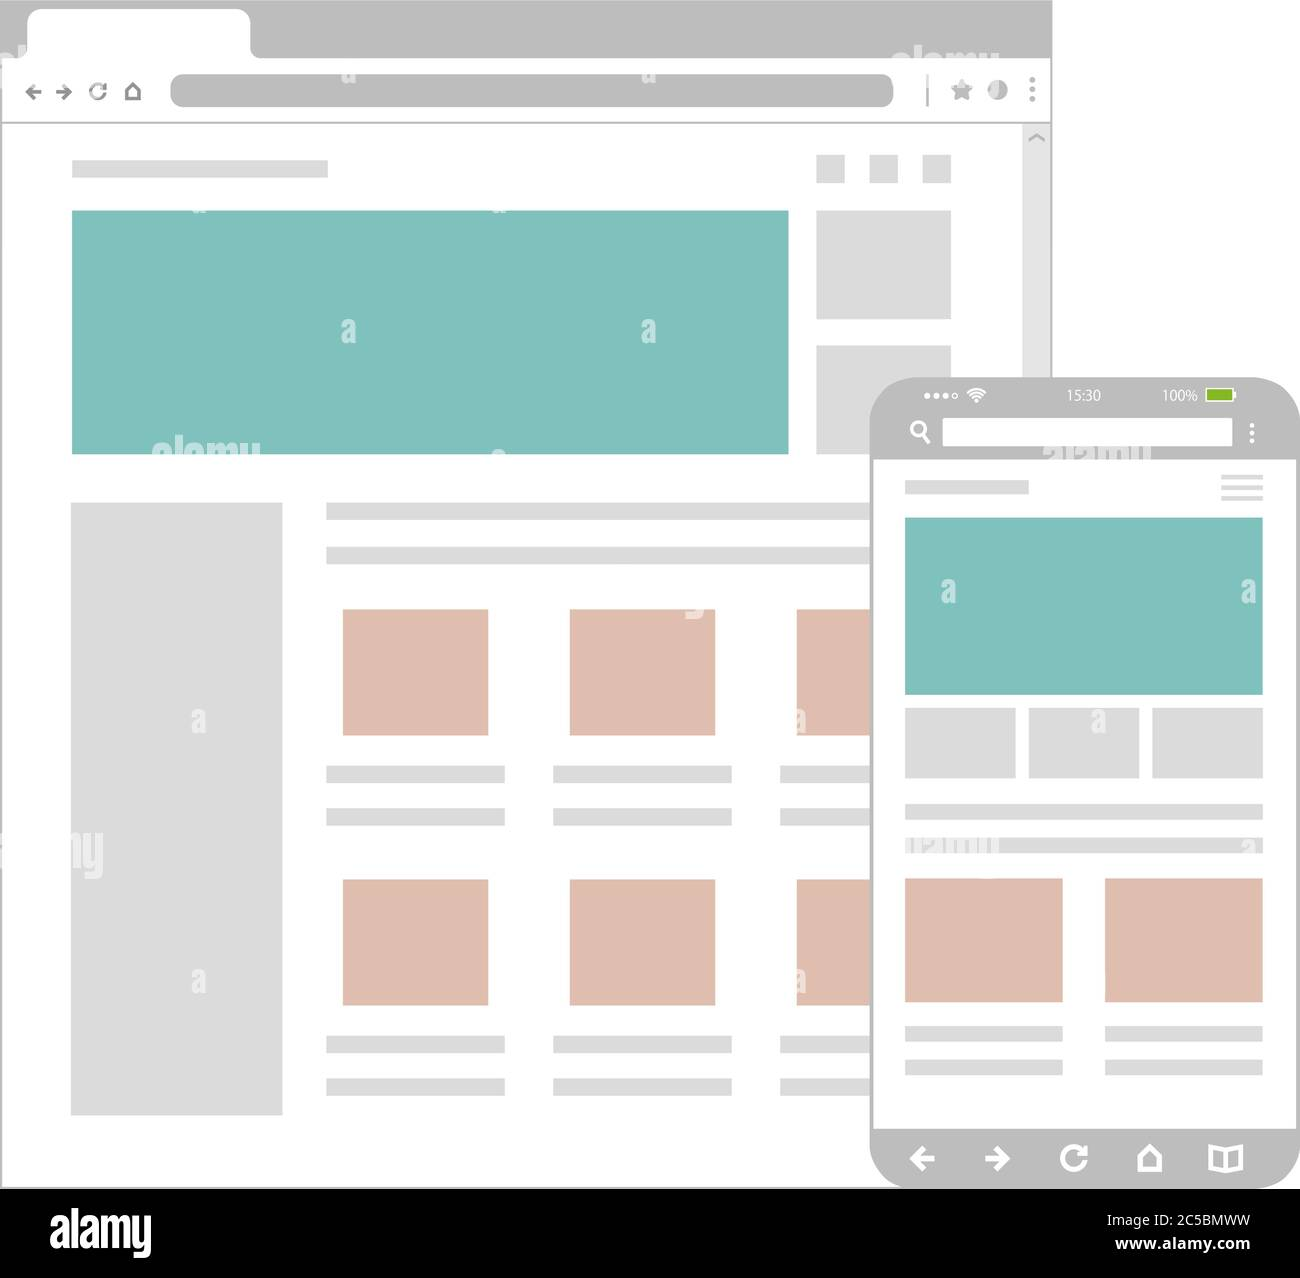 It only takes a few seconds to choose a basic template, insert text and images, and add the finishing touches. Web Pages Wireframe Layout Illustration Web Design Template For Pc Browser Smartphone Stock Vector Image Art Alamy